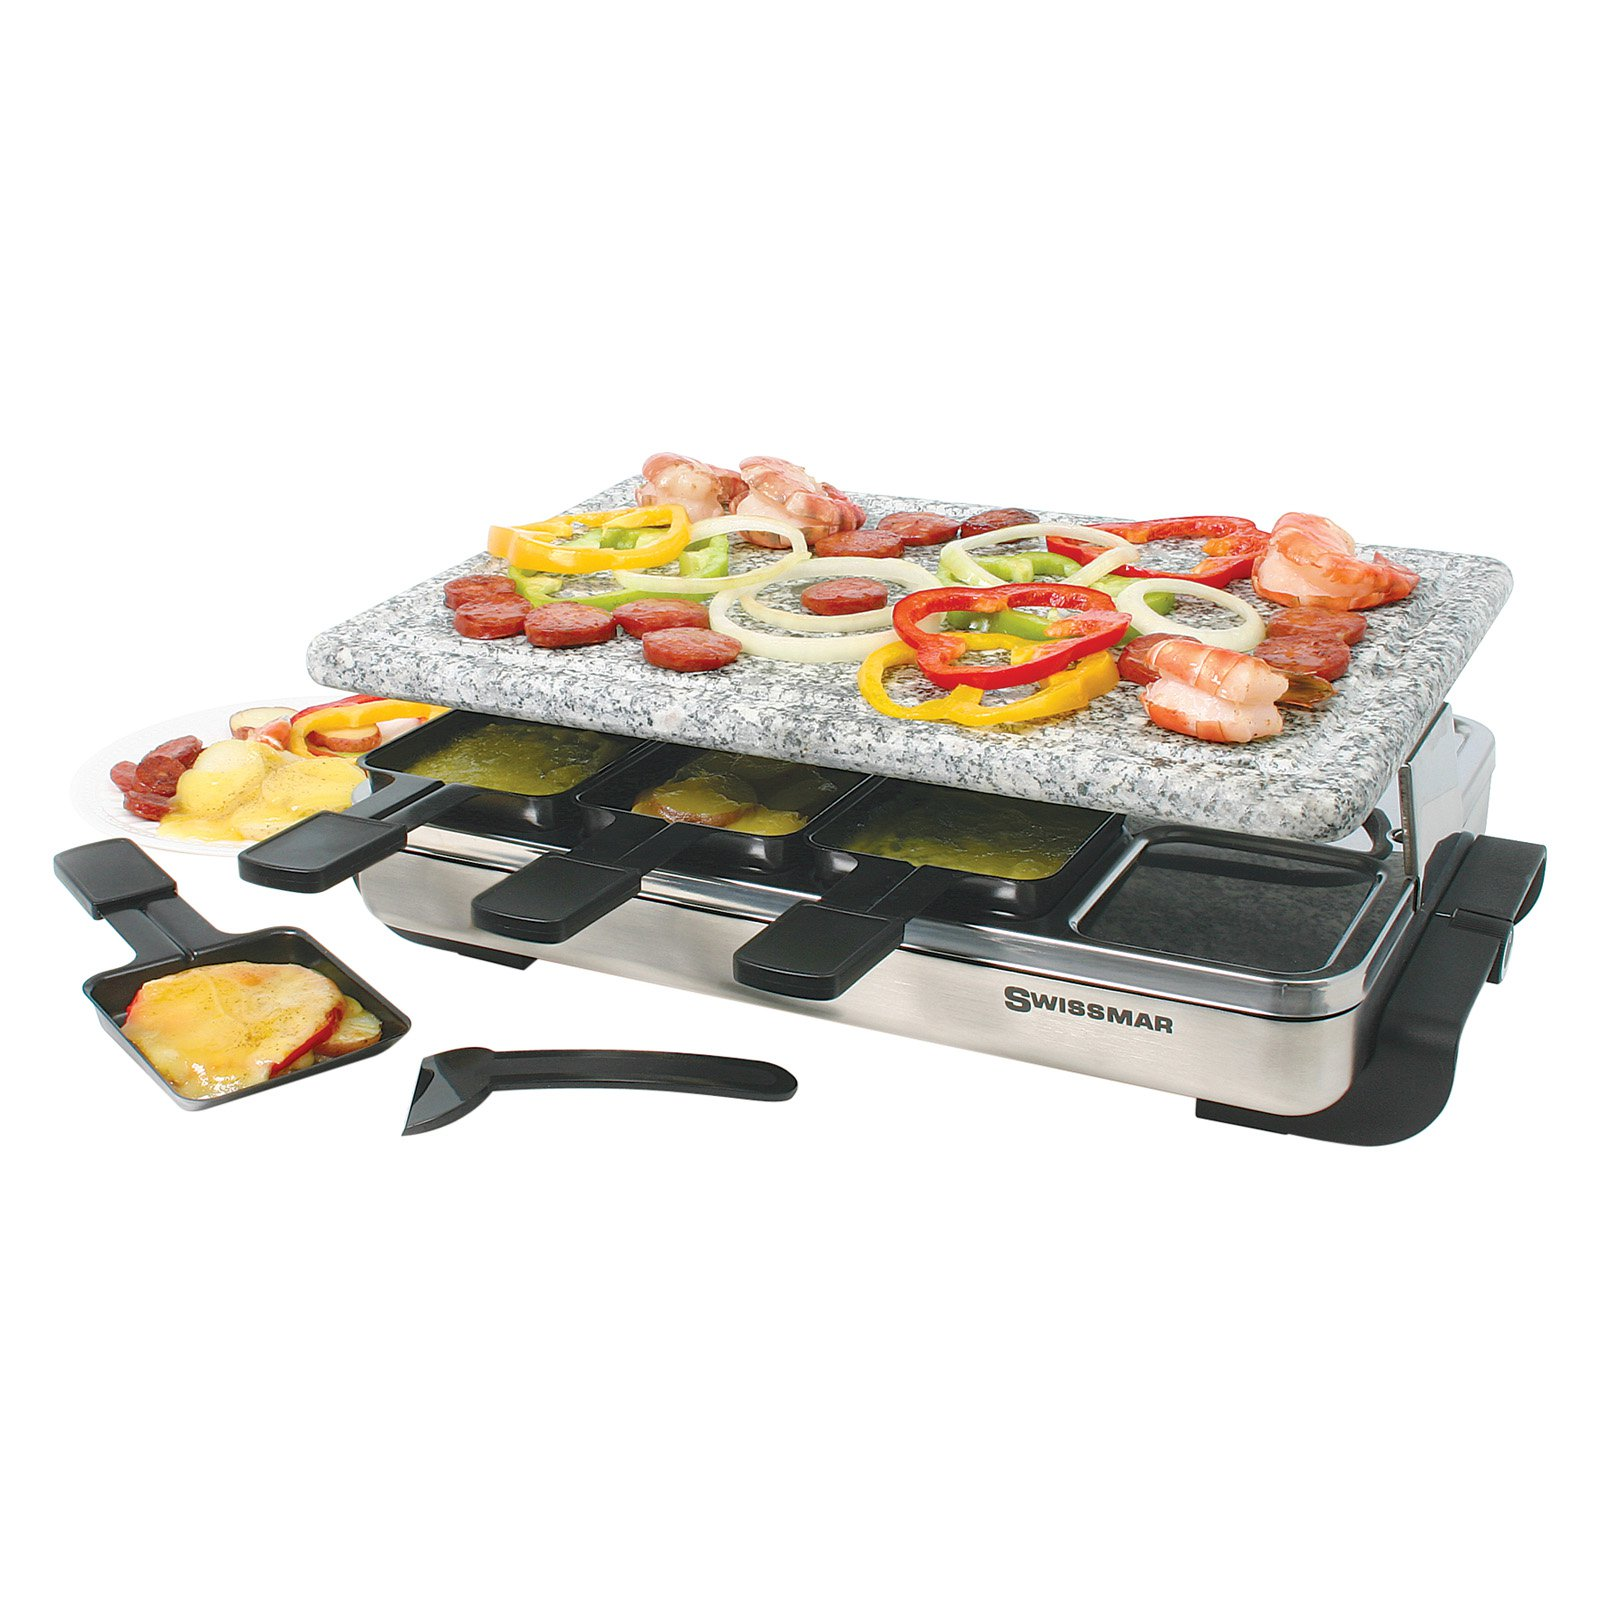 Swissmar Stelvio Raclette 8 Person Party Grill - Granite Stone and Stainless Steel